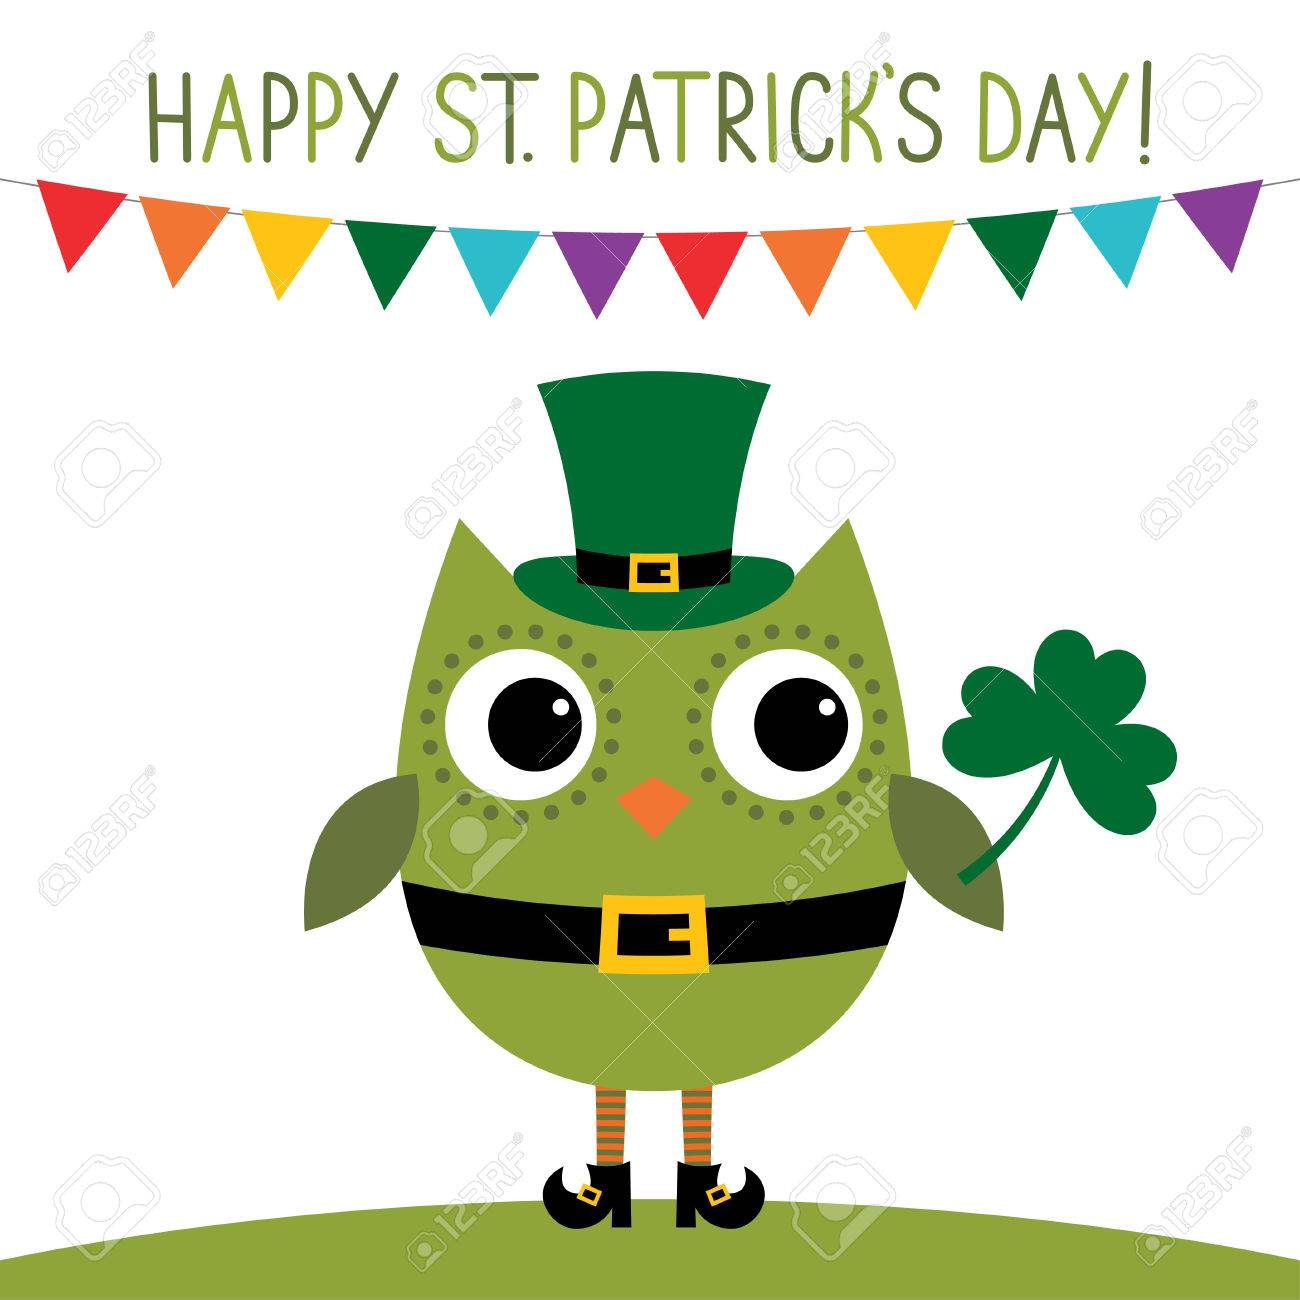 St Patricks Day Card Royalty Free Cliparts Vectors And Stock